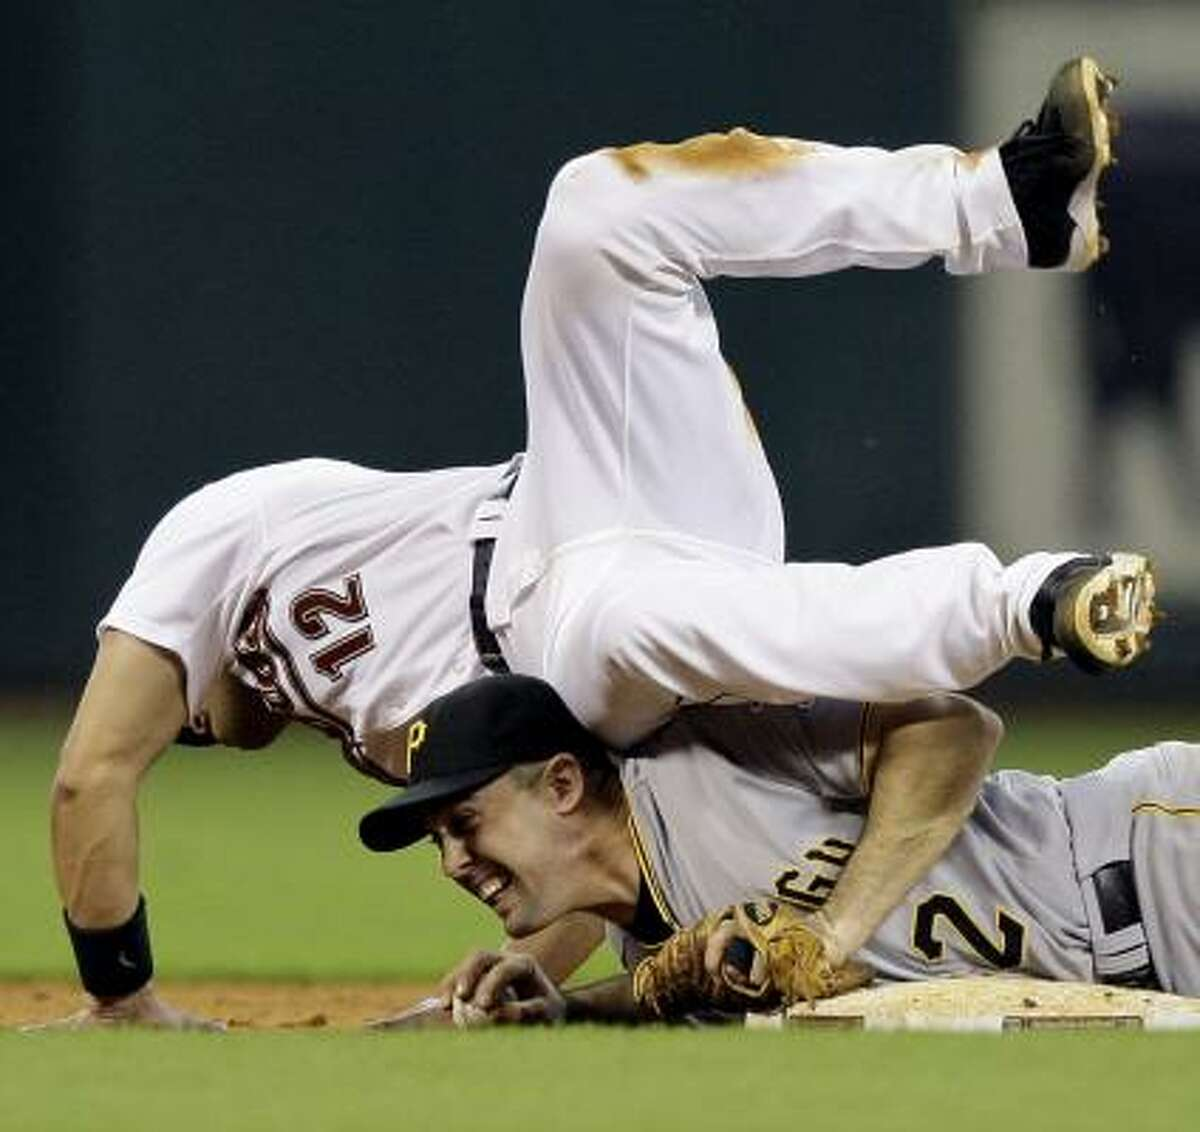 Houston's Ivan Rodriguez (12) is out at second as he falls over Pirates shortstop Jack Wilson (2) after Wilson dove to second base for the force out.